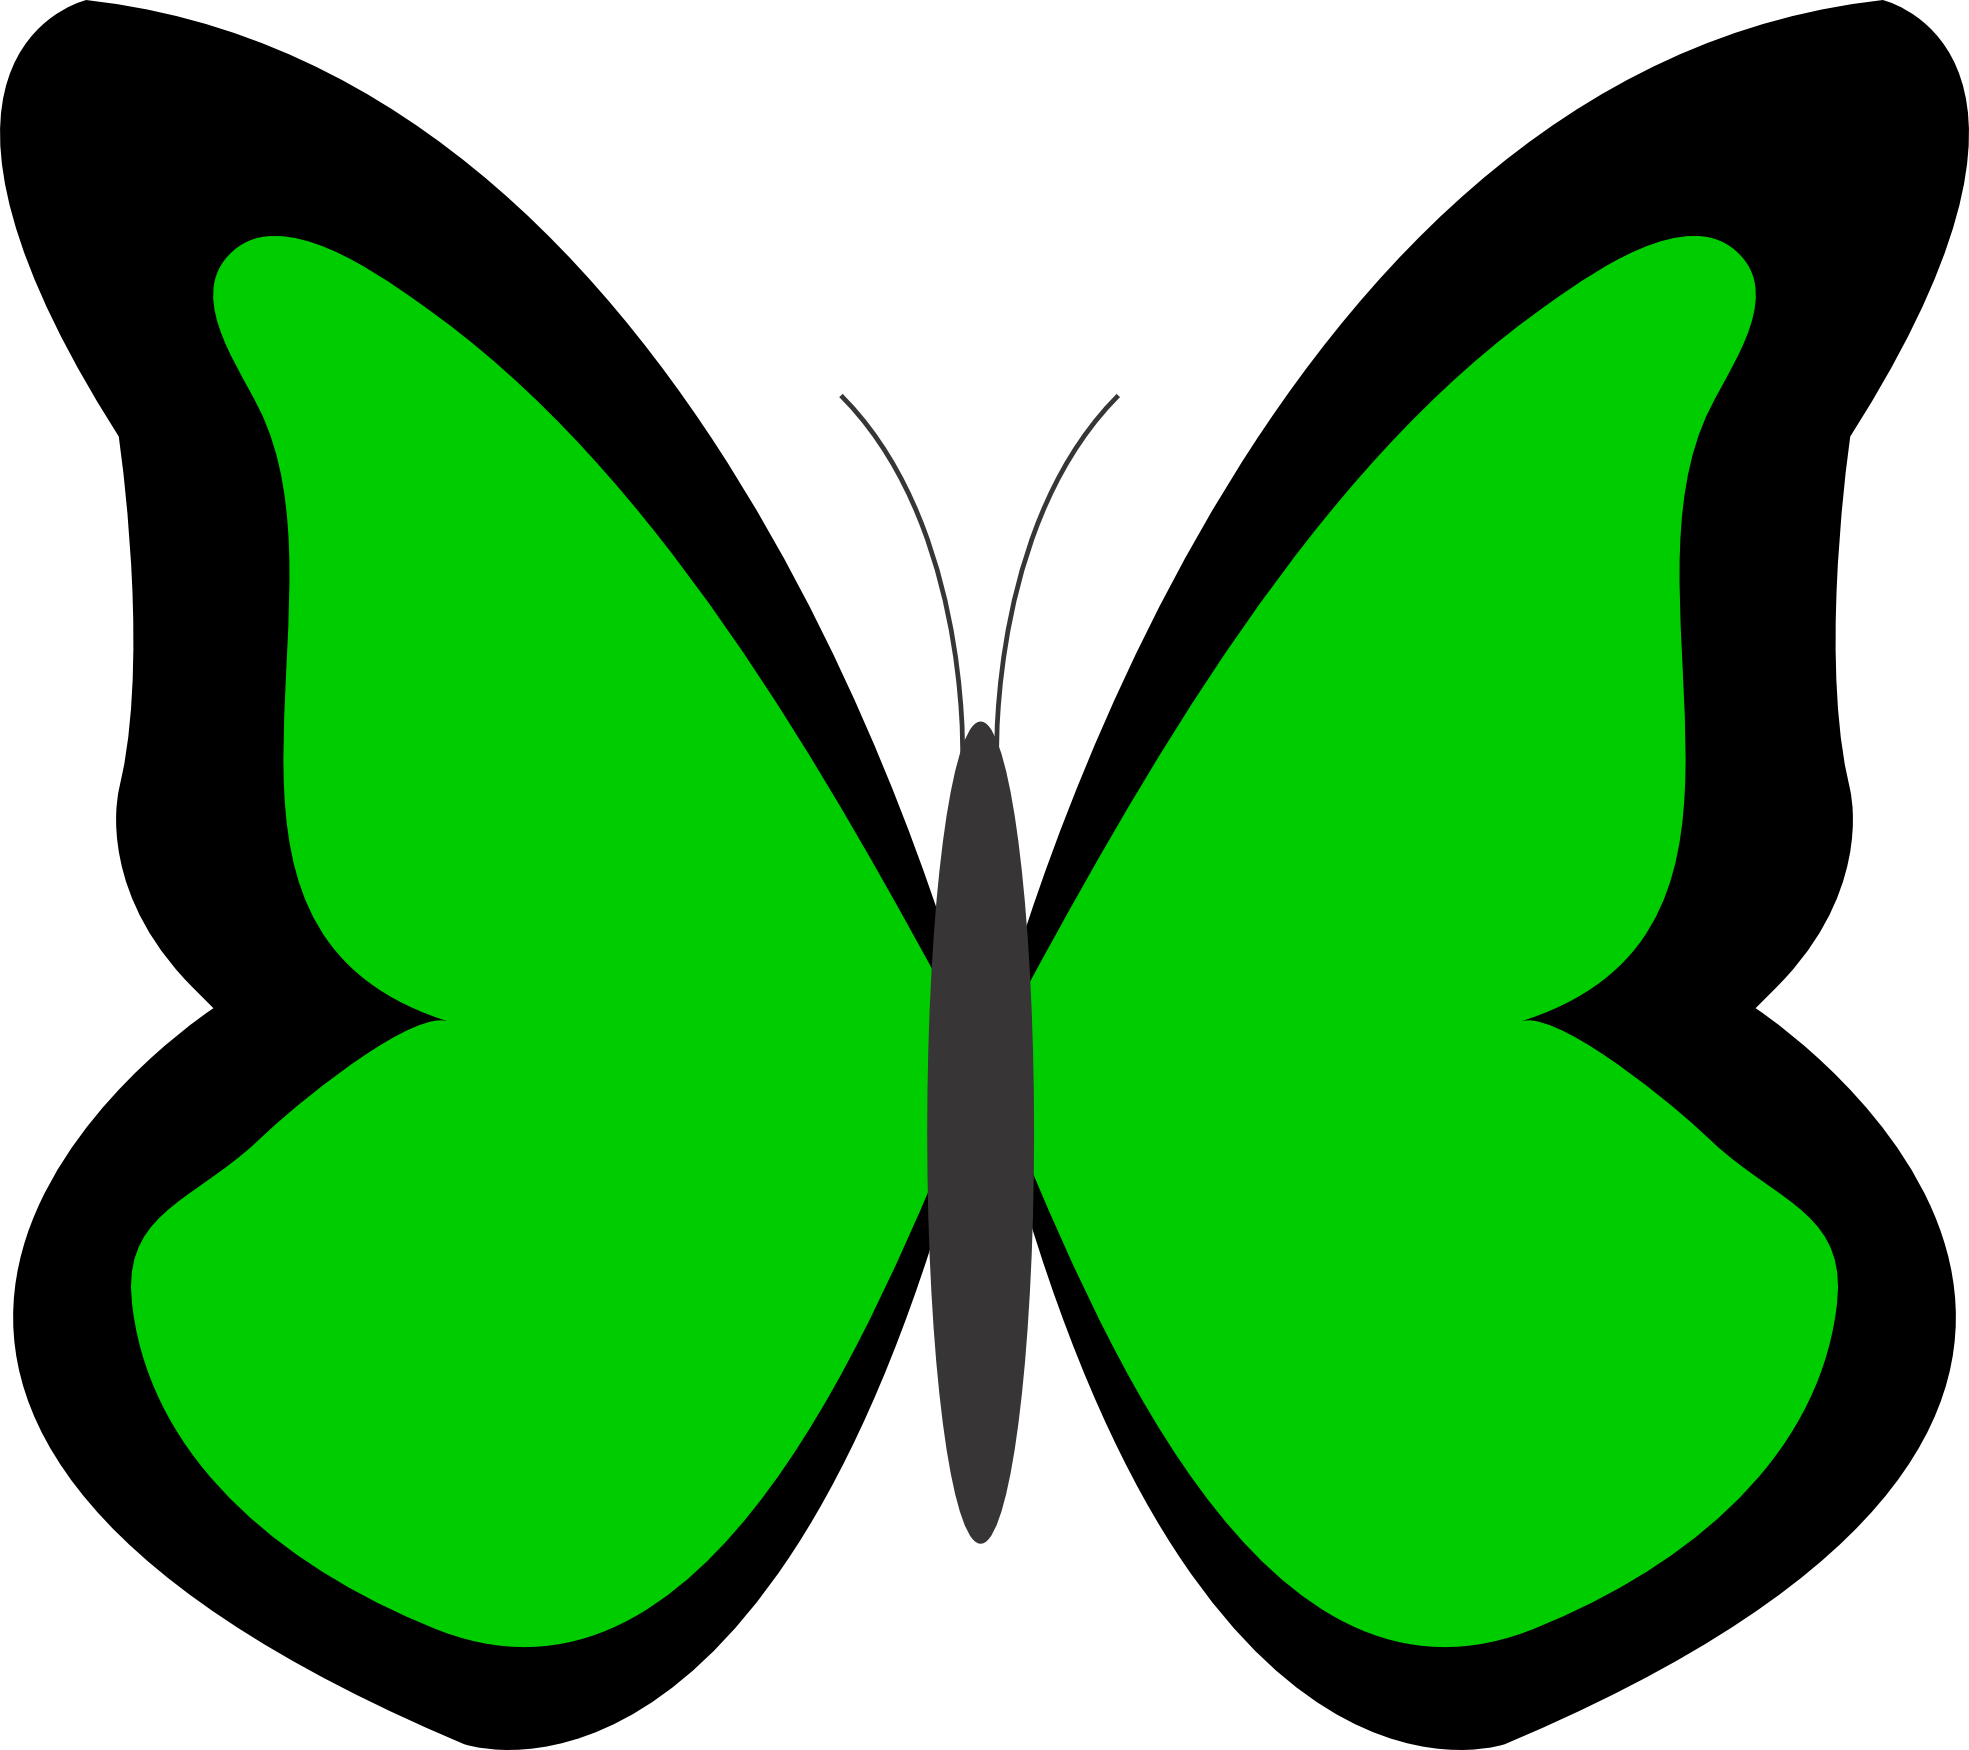 Color Green Clipart at GetDrawings.com | Free for personal use Color ...